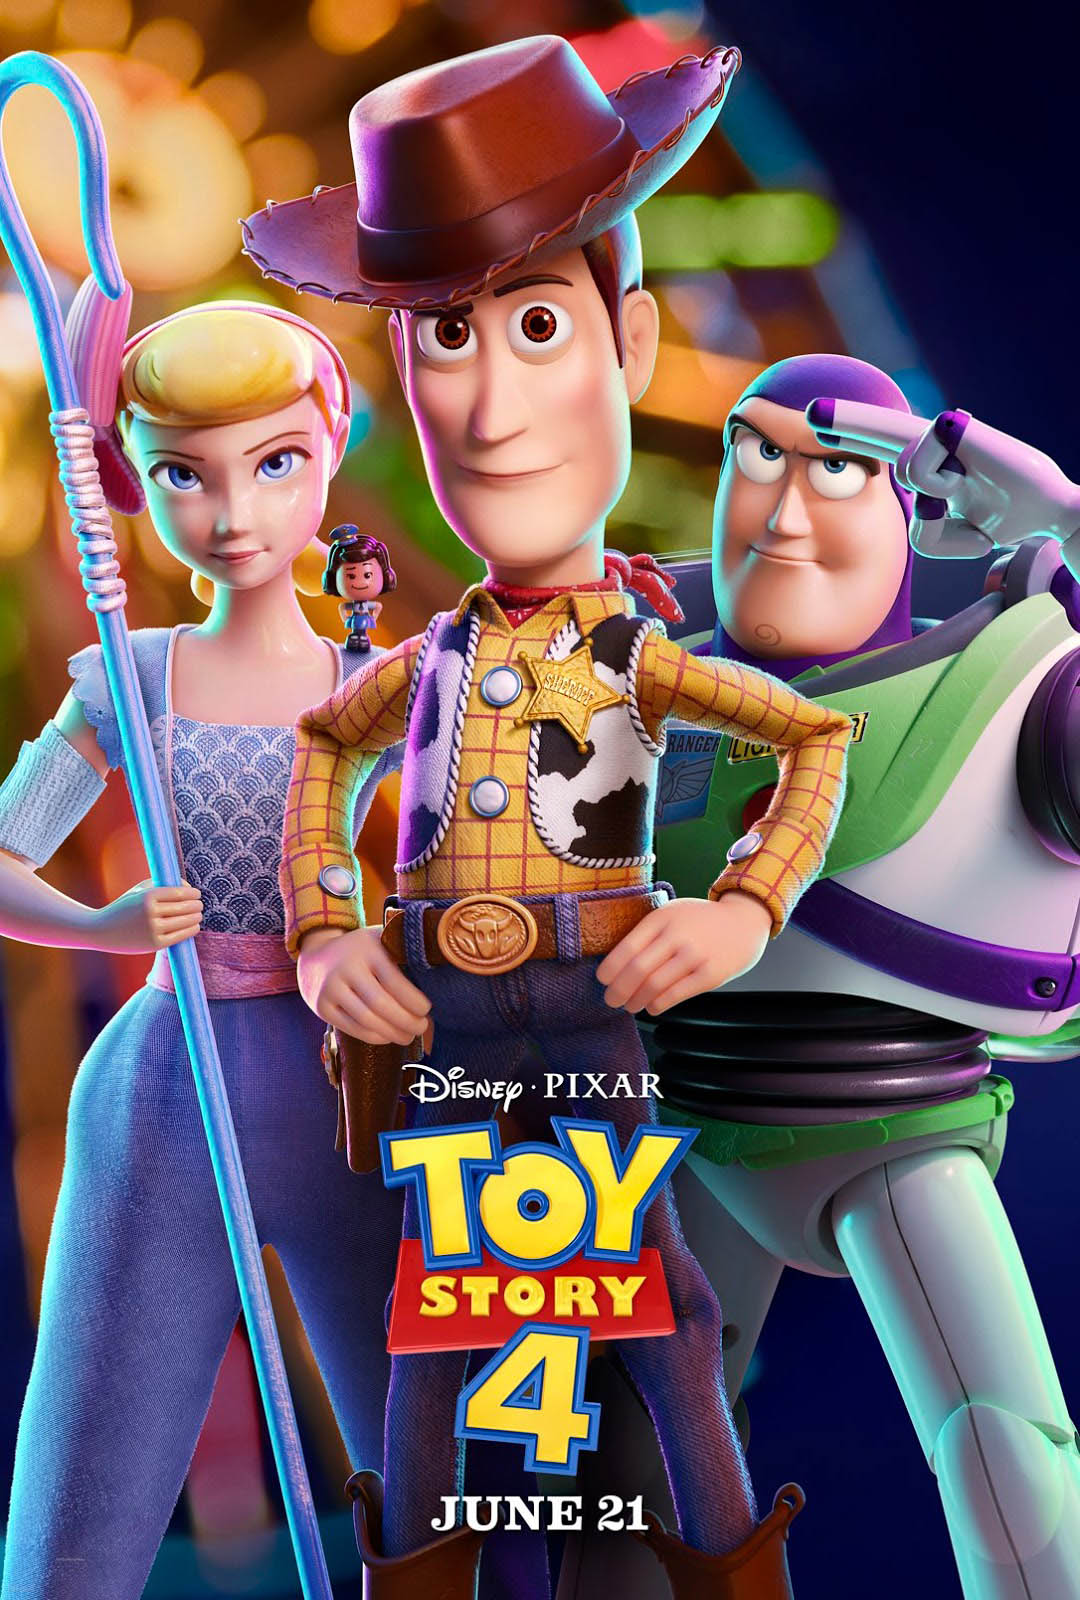 Toy Story 4 (2019) Full Movie Free Online